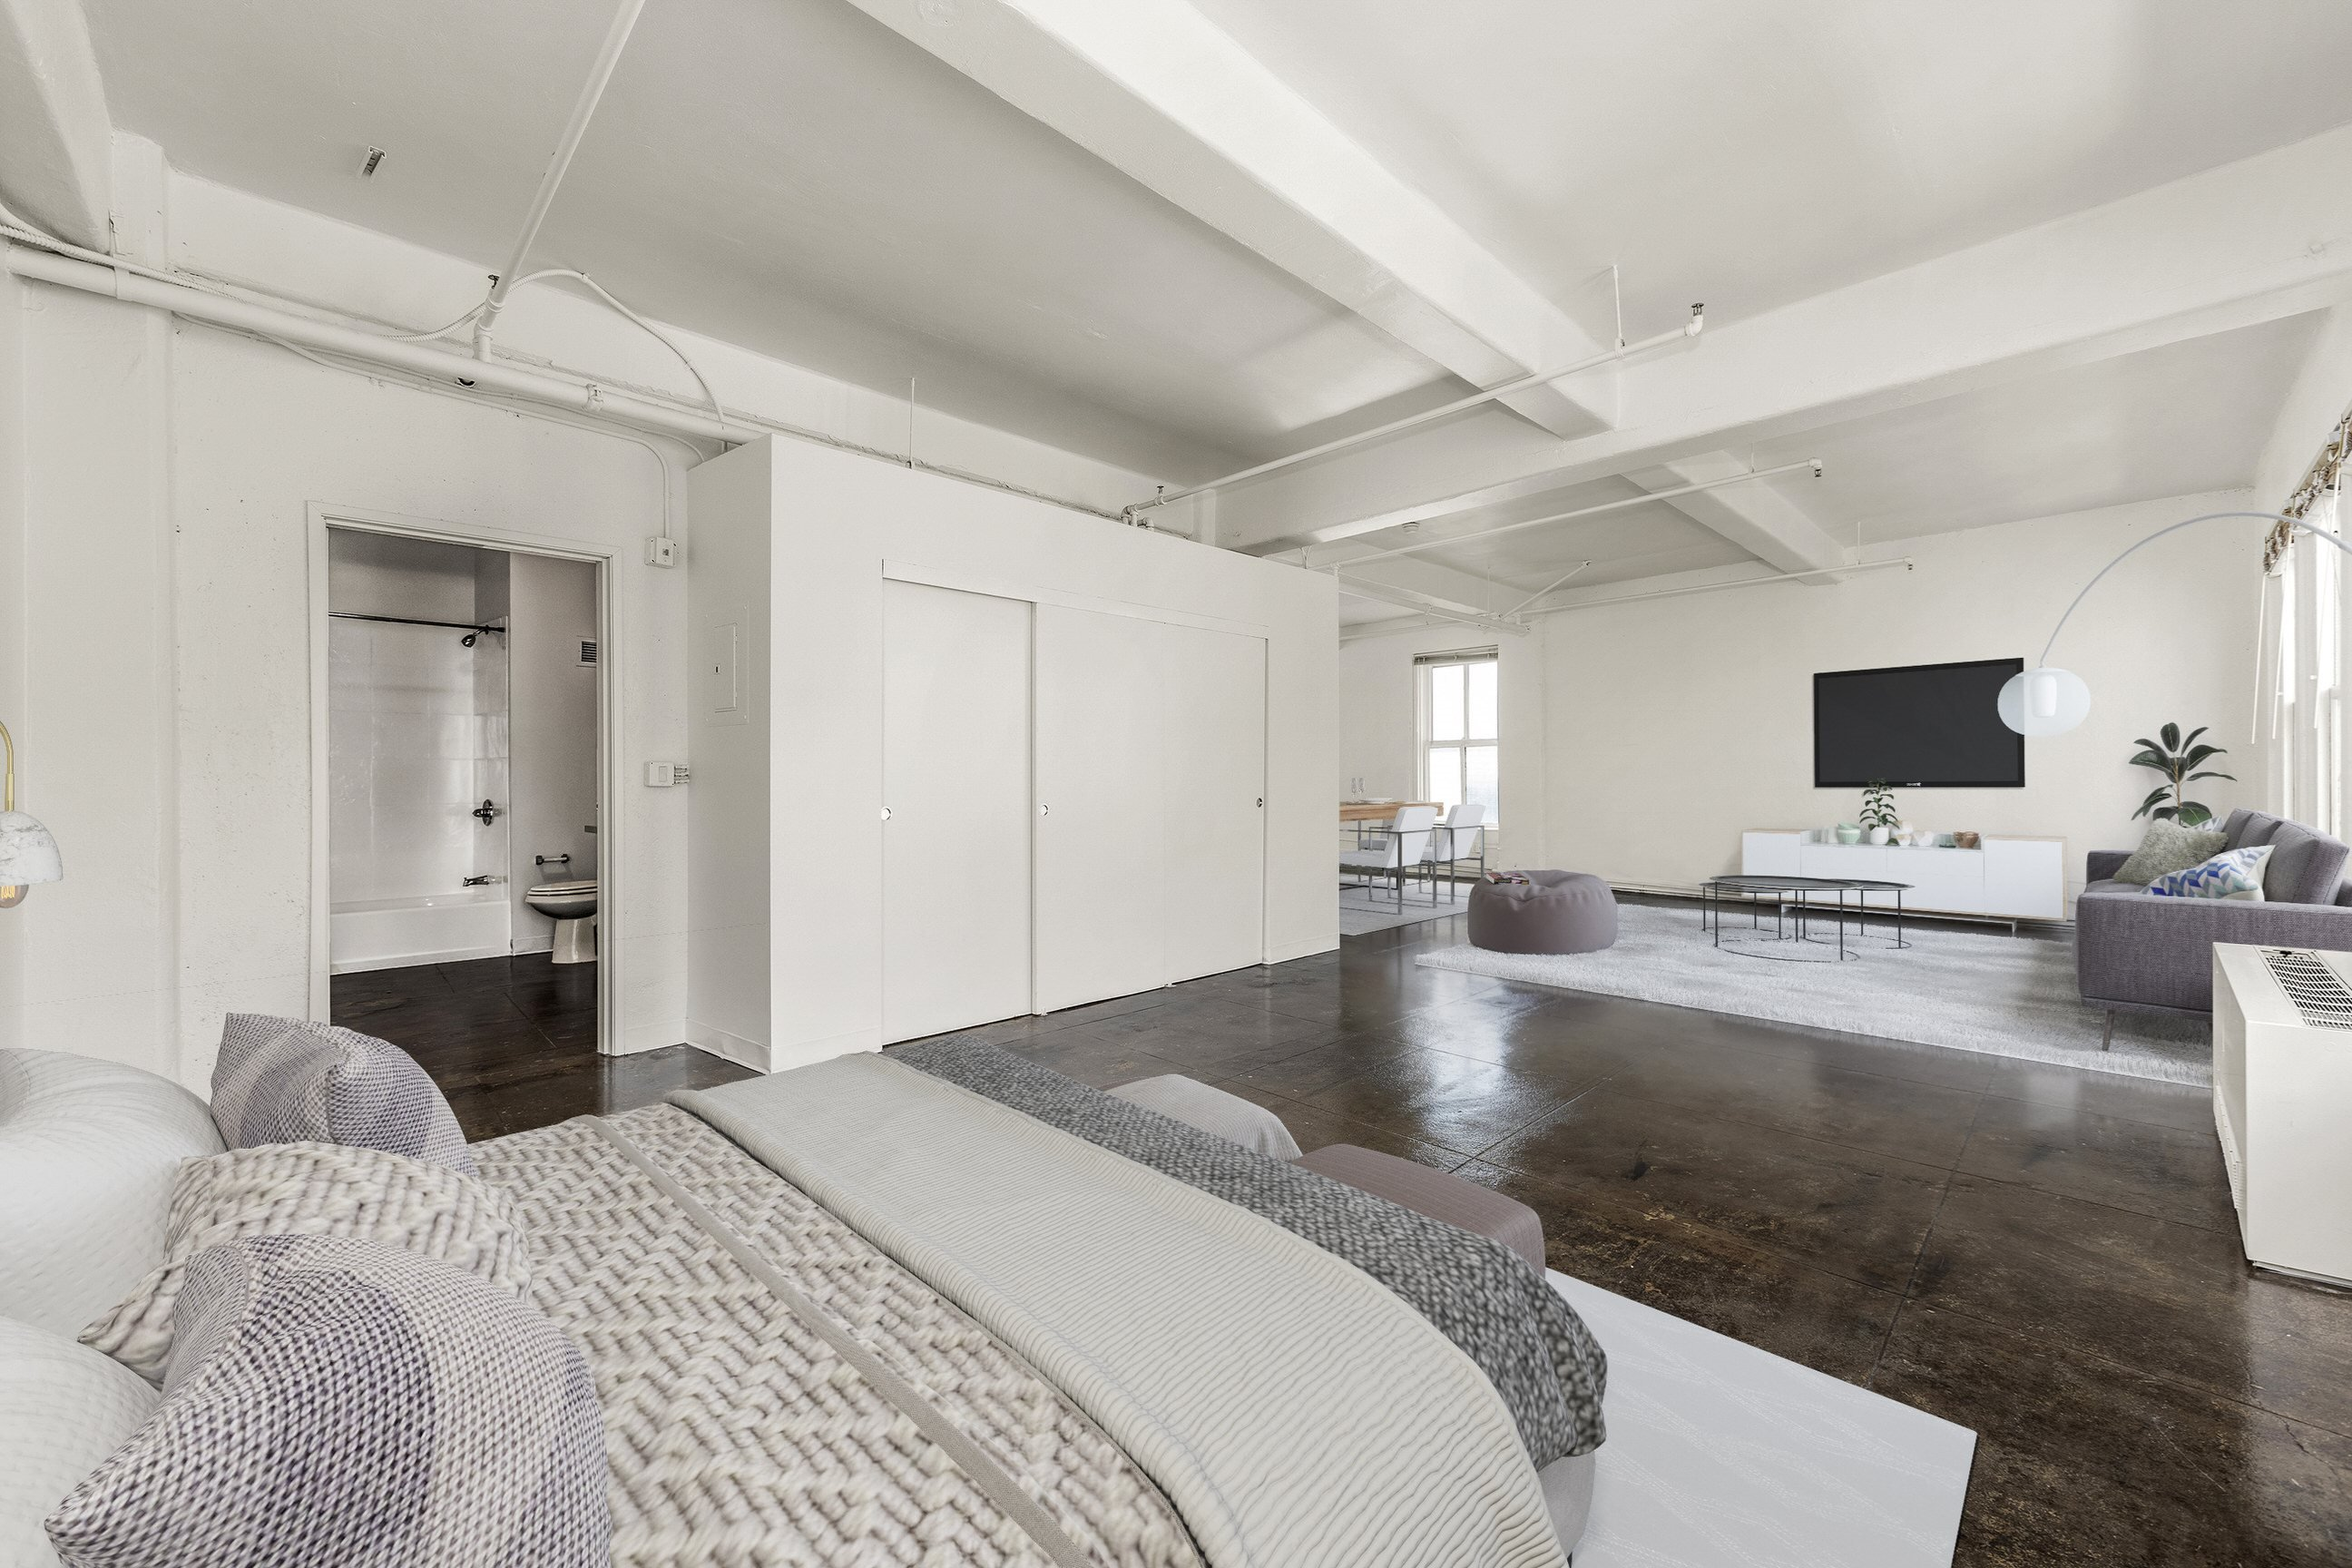 Interior Photo at San Fernando Building Lofts in Downtown Los Angeles, CA 90013